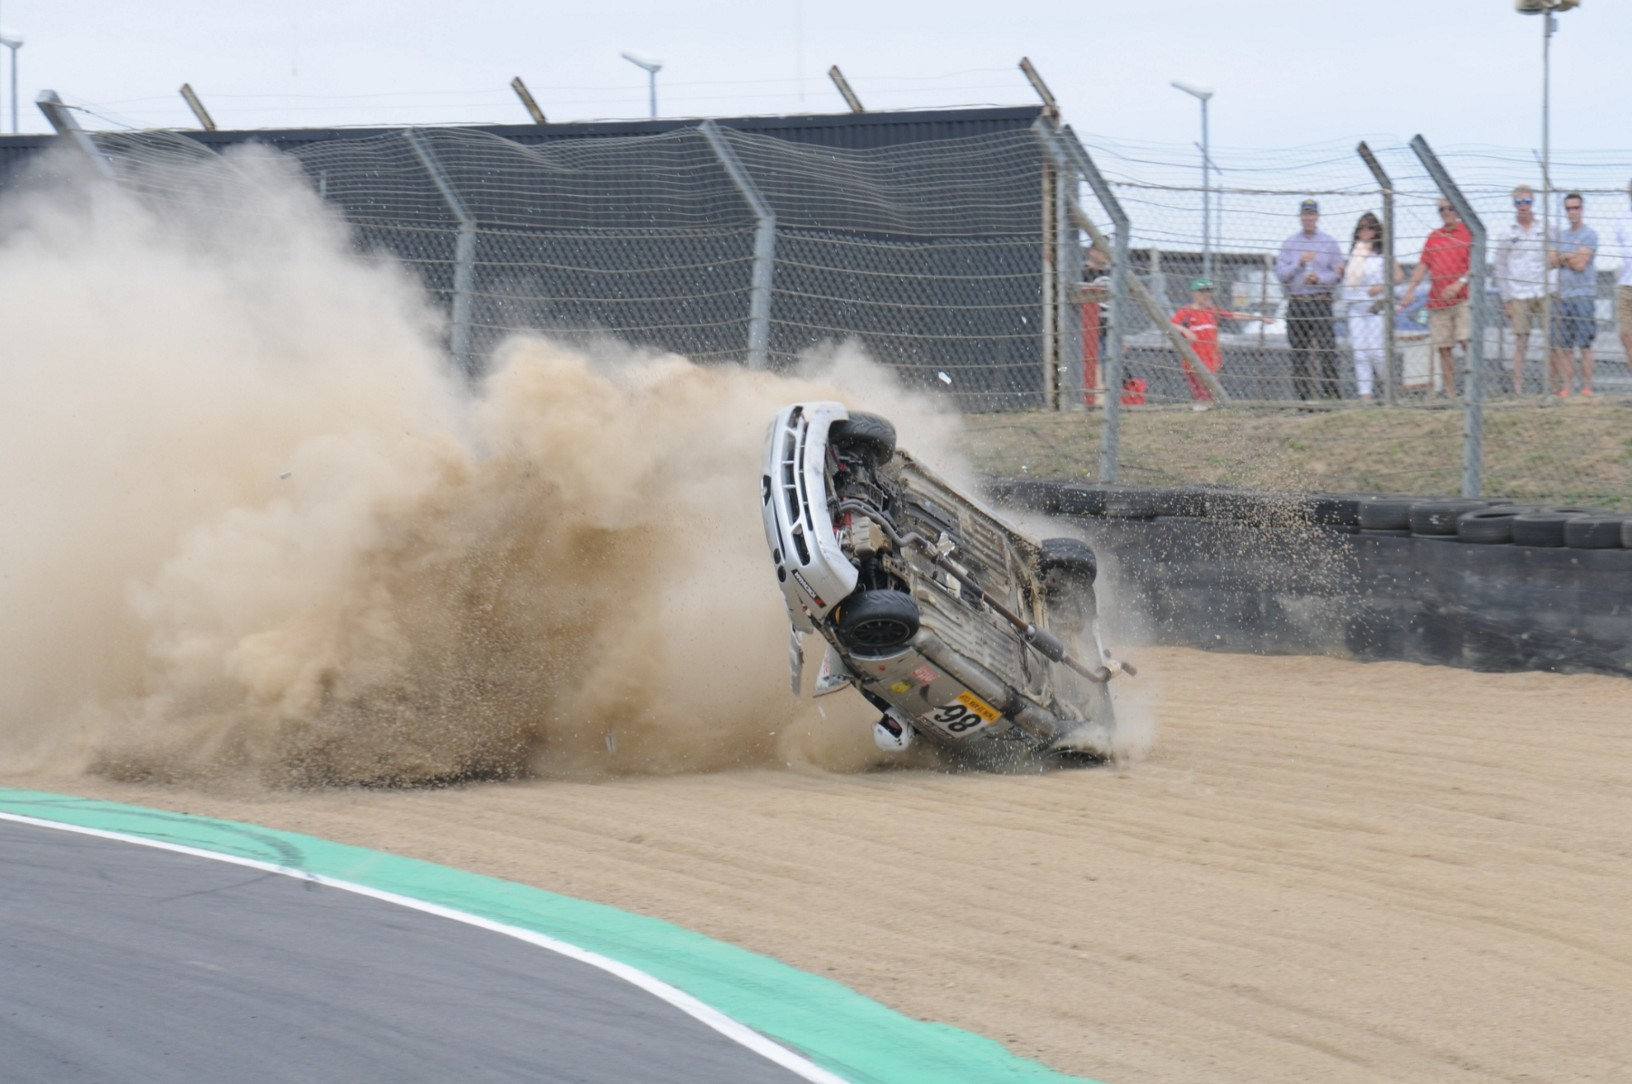 Incredible Moment Racing Driver Survives Crash With Head Out Of Window SWNS SMASH SEQUENCE 06